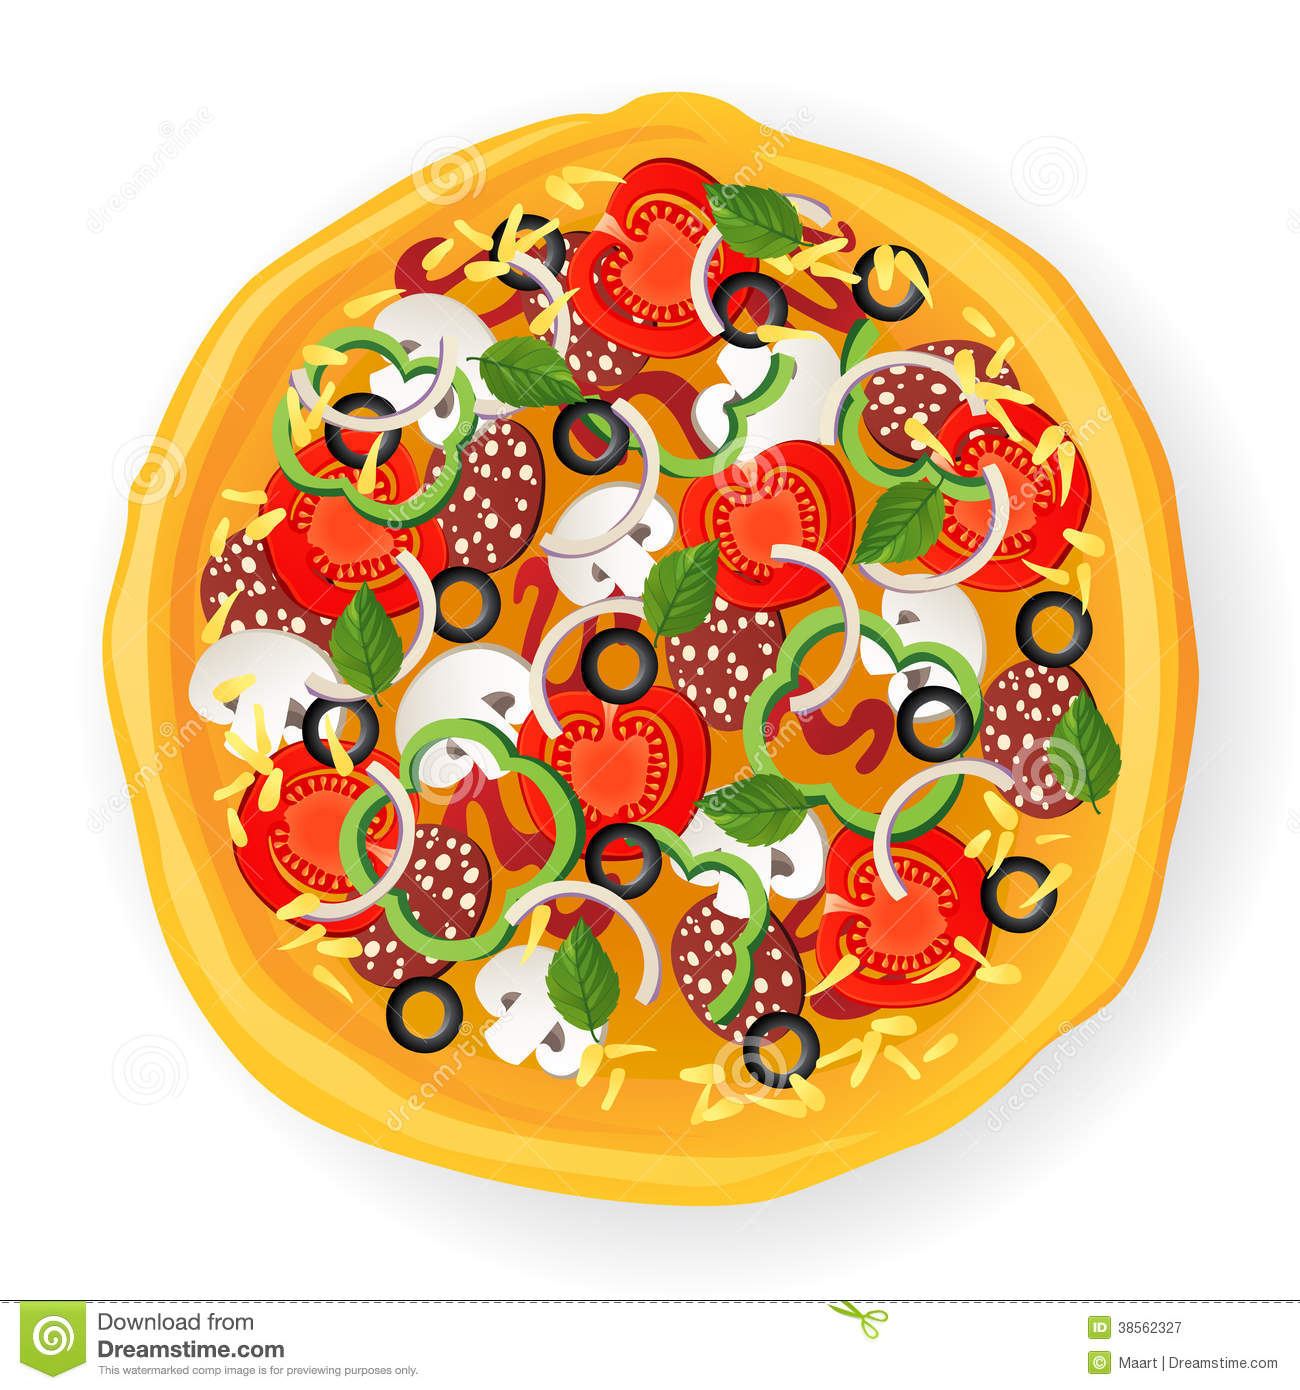 pizza icon royalty free stock photography image 38562327 food bank clipart image food bank clipart free